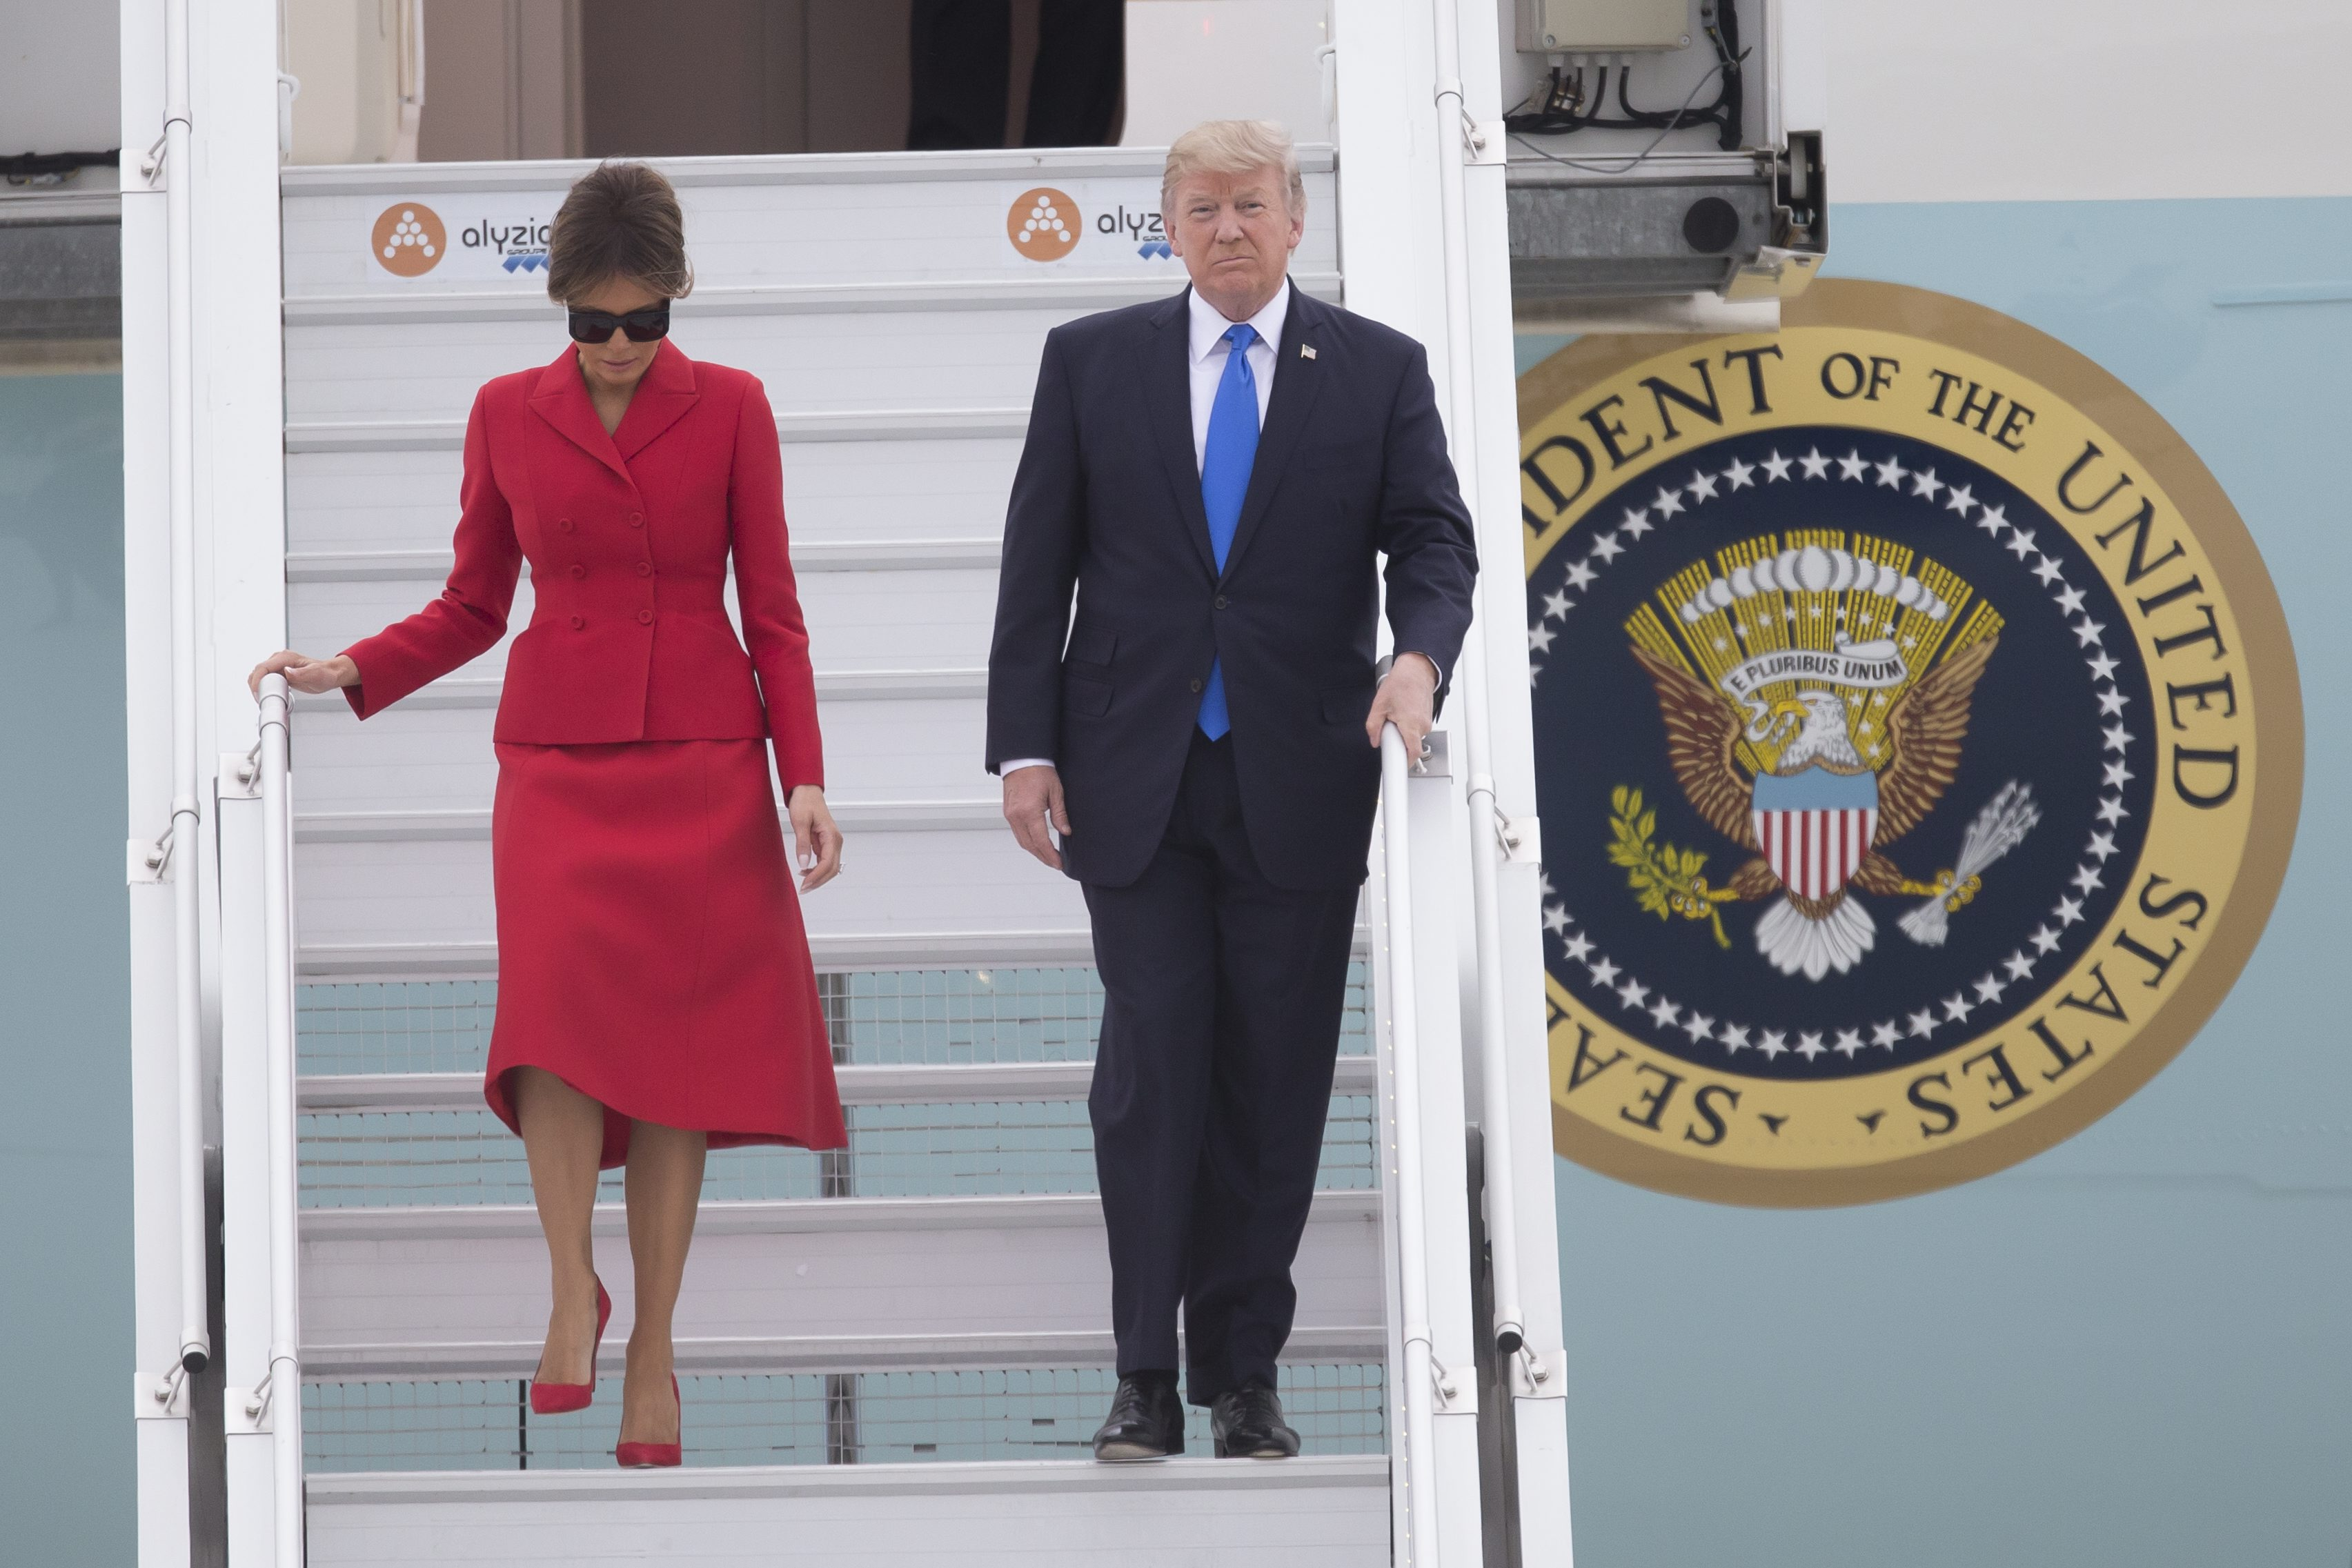 - Le president des Etat-Unis Donald Trump accompagne de sa femme Melania Trump descendent du Air Force One  a l'aeroport d'Orly. Paris, 13 juillet 2017 -   US President Donald Trump arrived in Paris on Thursday for a 24-hour visit. During a lightning visit full of pomp and ceremony, Trump will be the guest of honour at France's Bastille Day festivities after a trip to Napoleon's tomb and a Michelin-starred dinner at the Eiffel Tower. Here with his wife Melania, Image: 341677450, License: Rights-managed, Restrictions: , Model Release: no, Credit line: Profimedia, MAXPPP